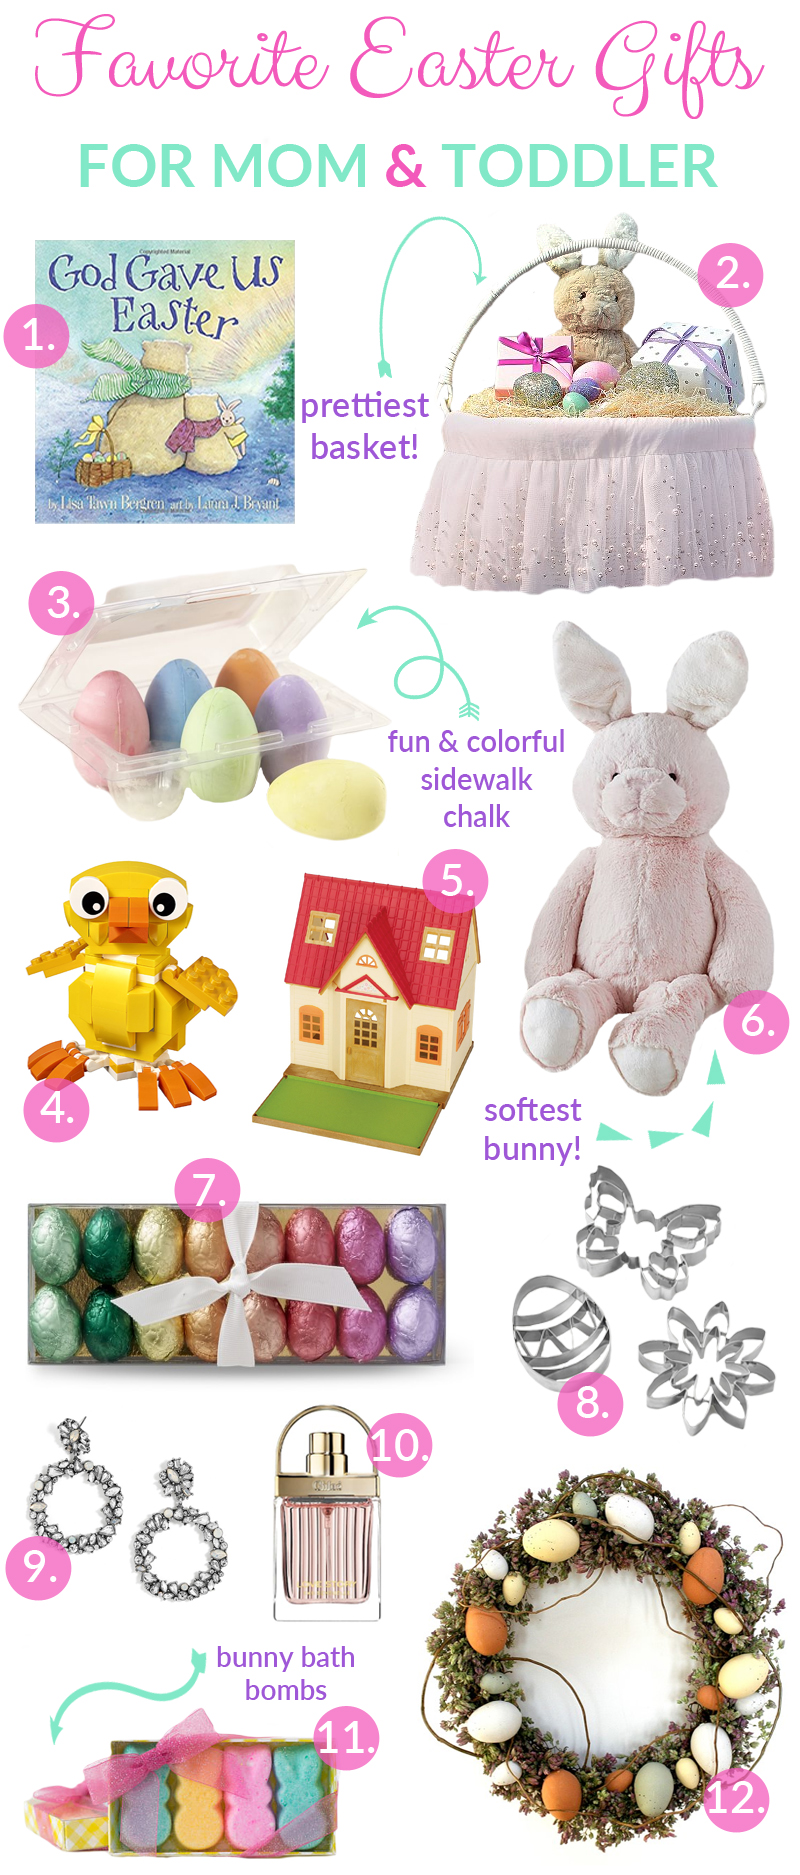 Favorite Easter Gifts for Toddlers by popular mom blogger Walking in Memphis in High Heels